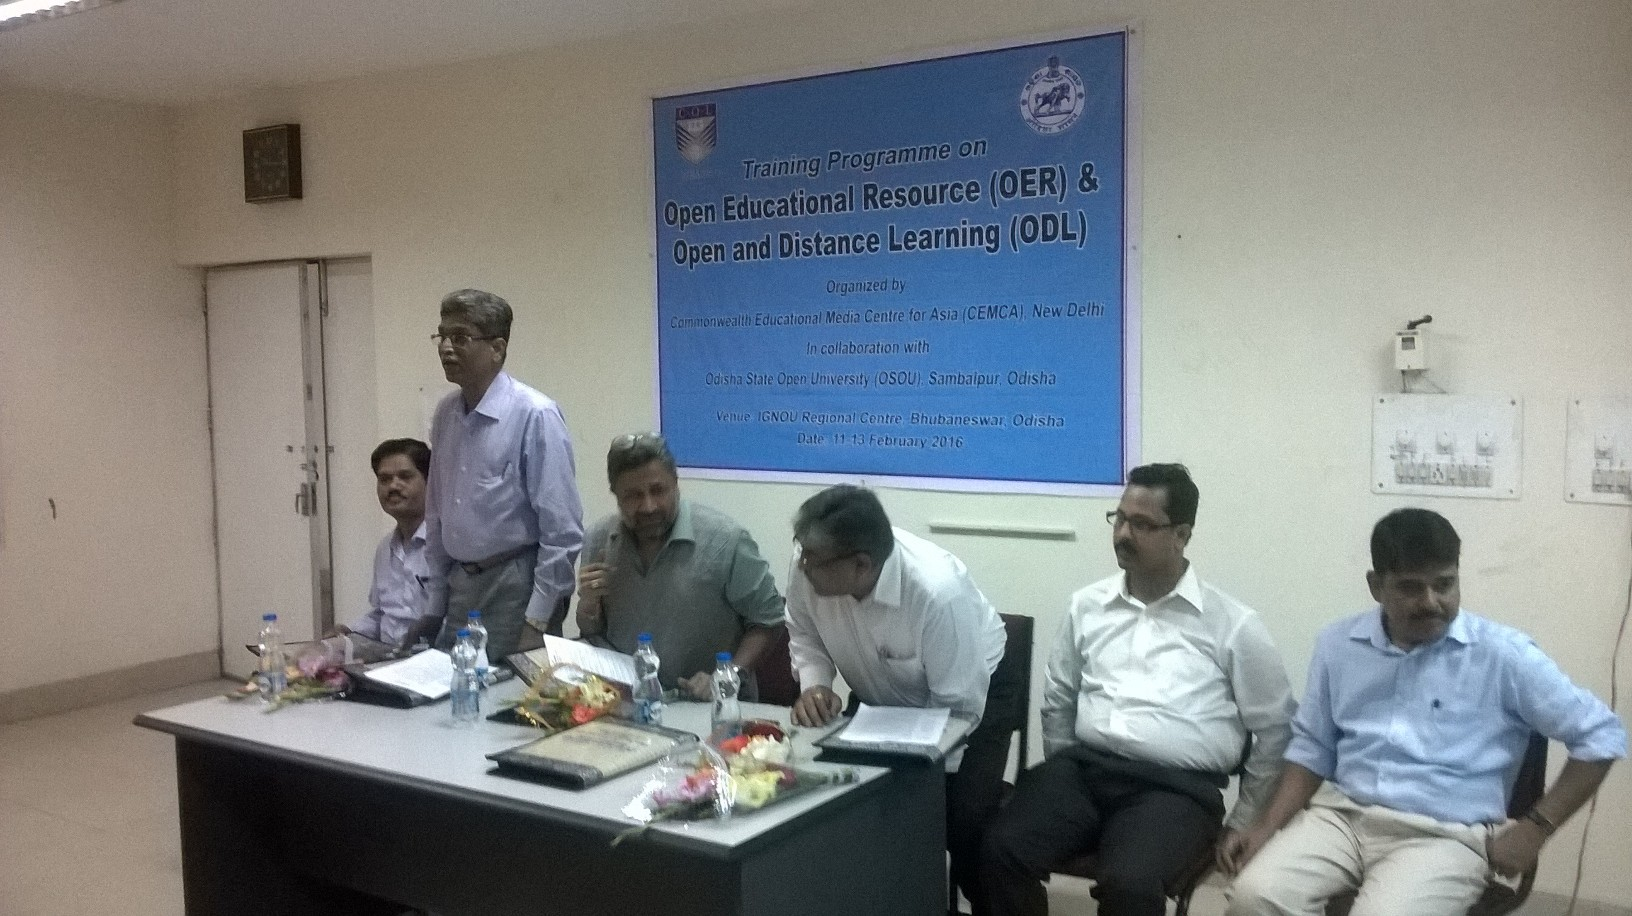 Inauguration Meeting of 3 Days Training Programme on OER & ODL